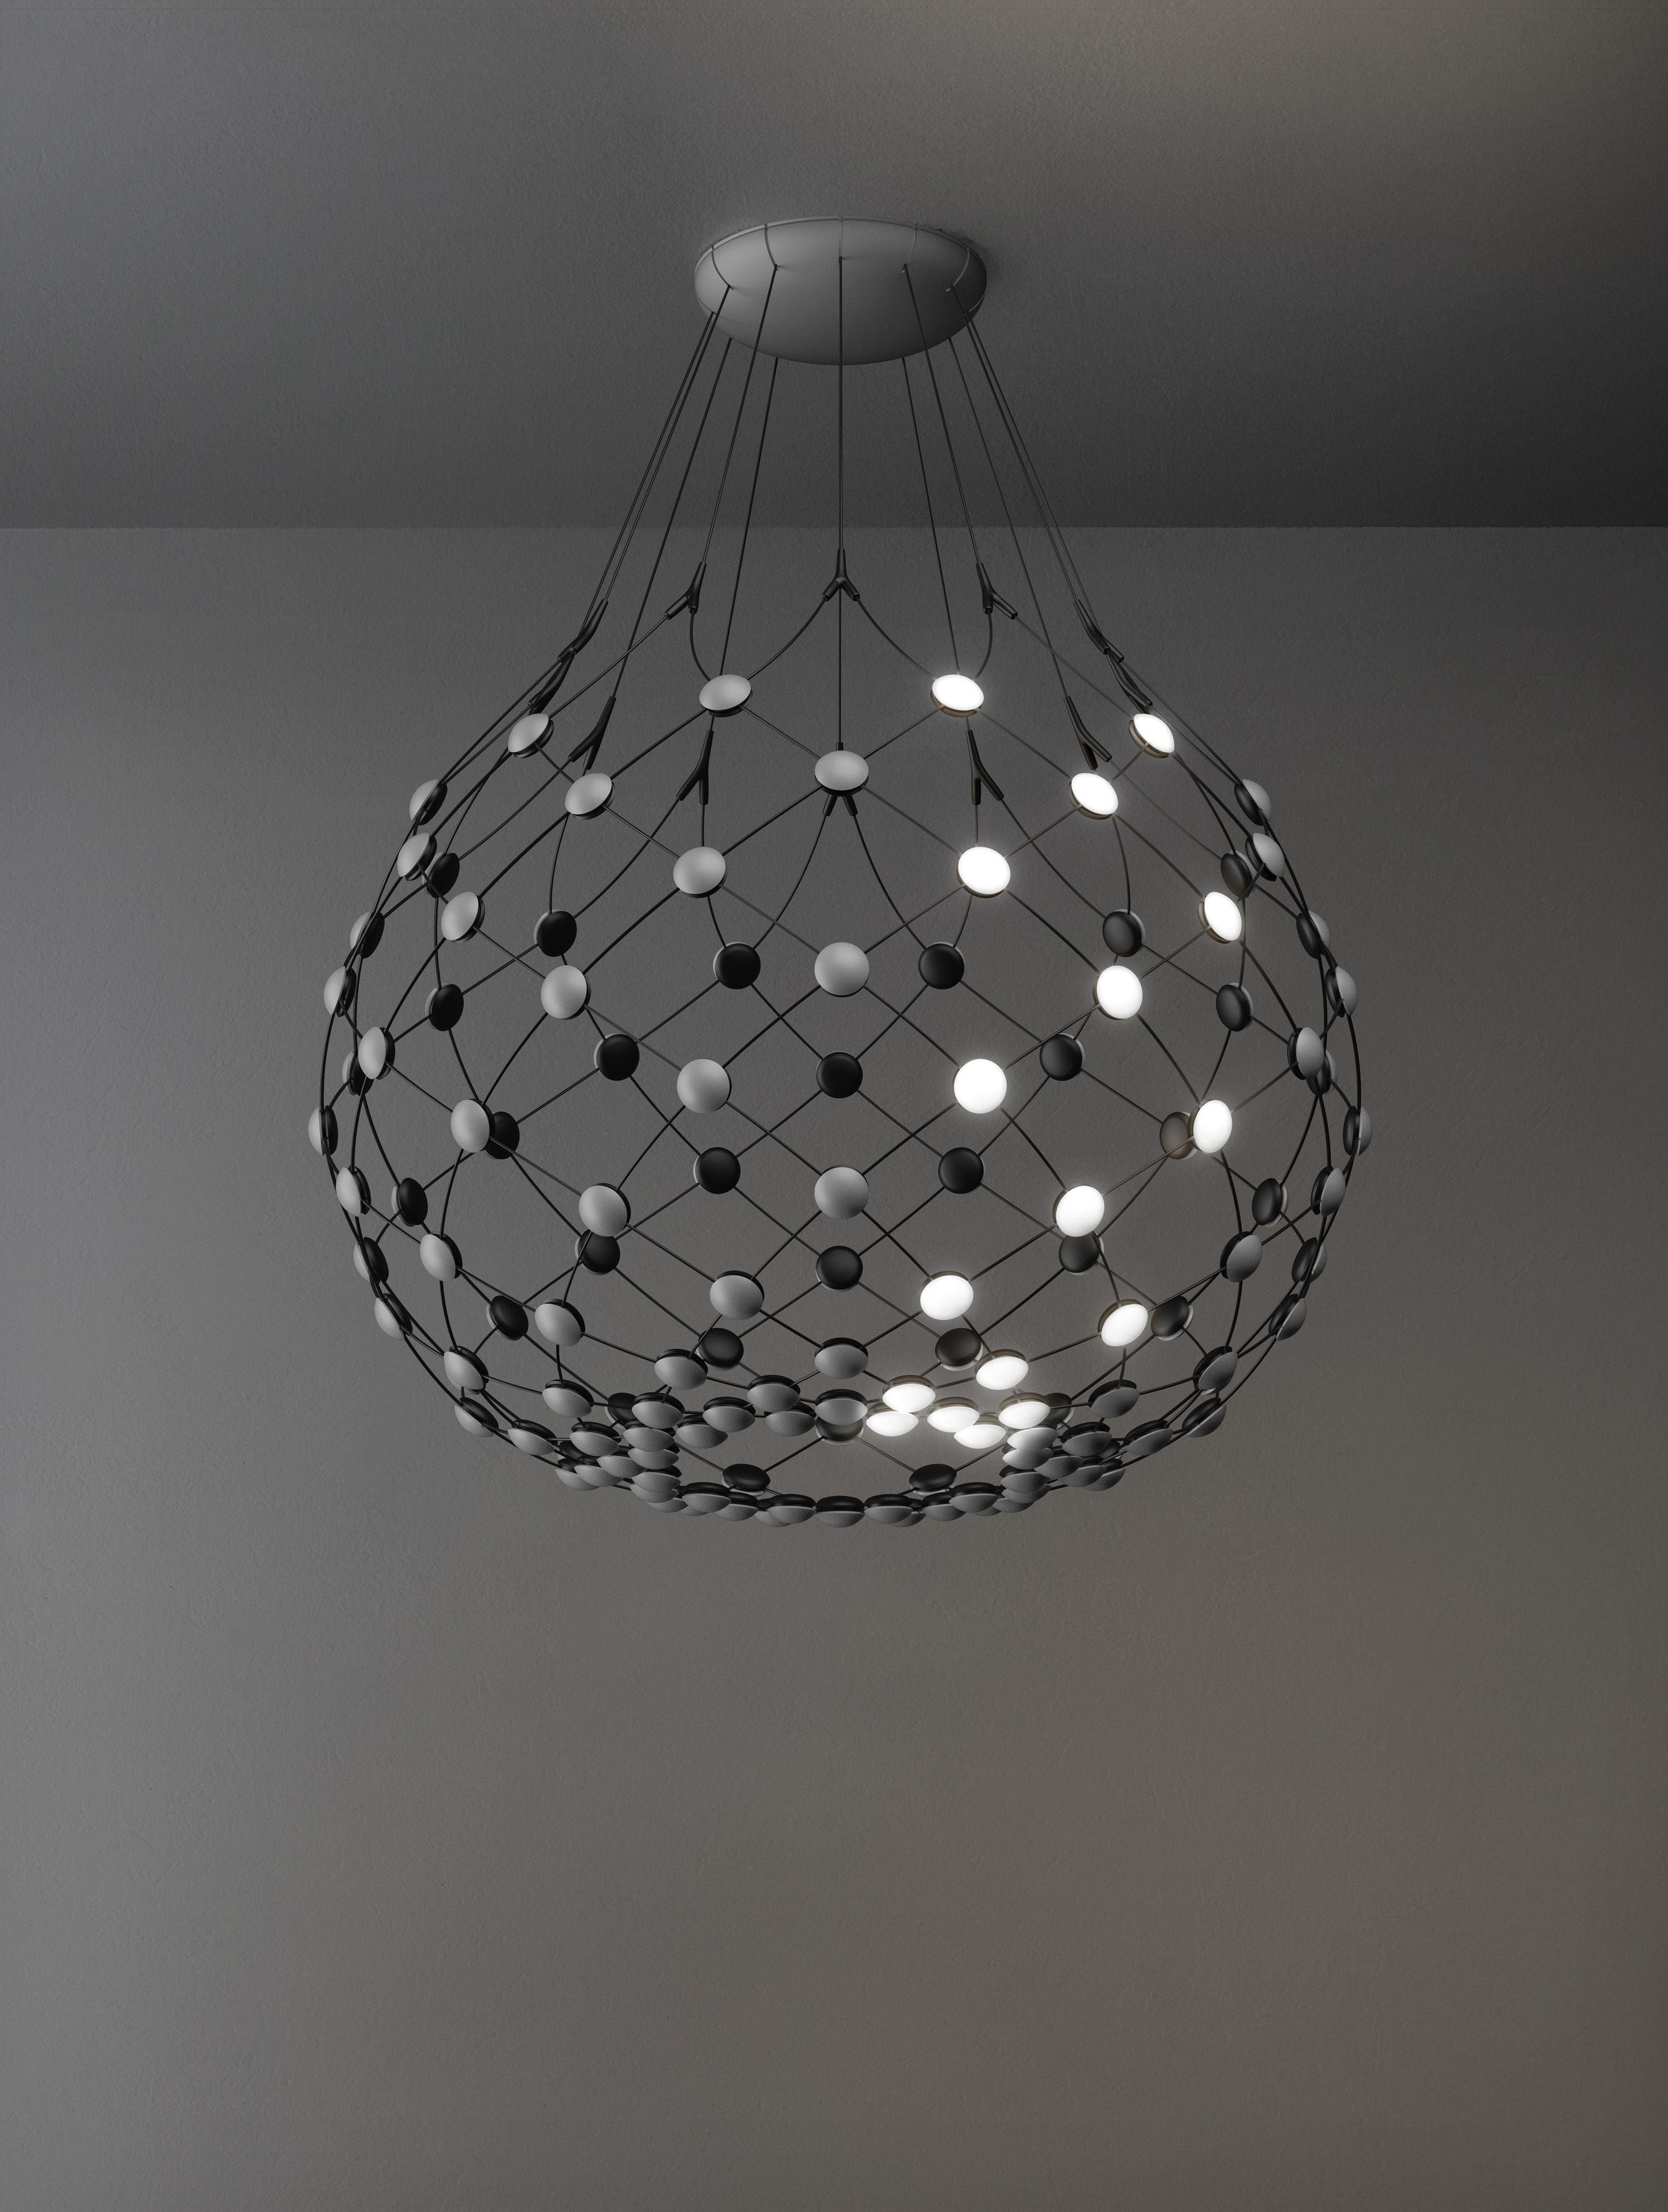 Pin by Janne on Lysanbefalinger | Suspension lamp, Pendant